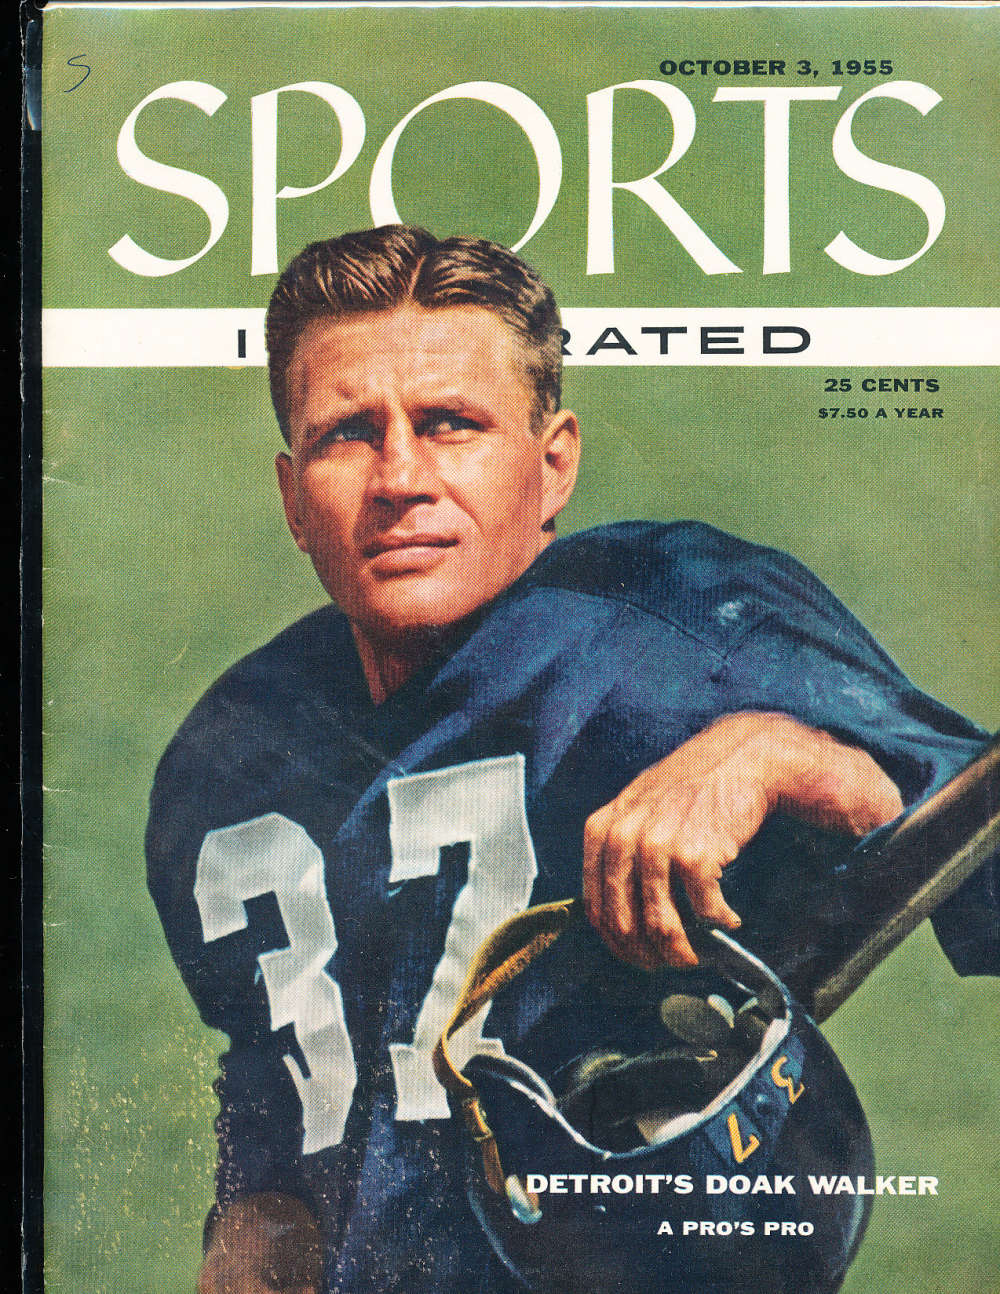 1955, October 3, doak walker Lions Sports Illustrated no label newsstand